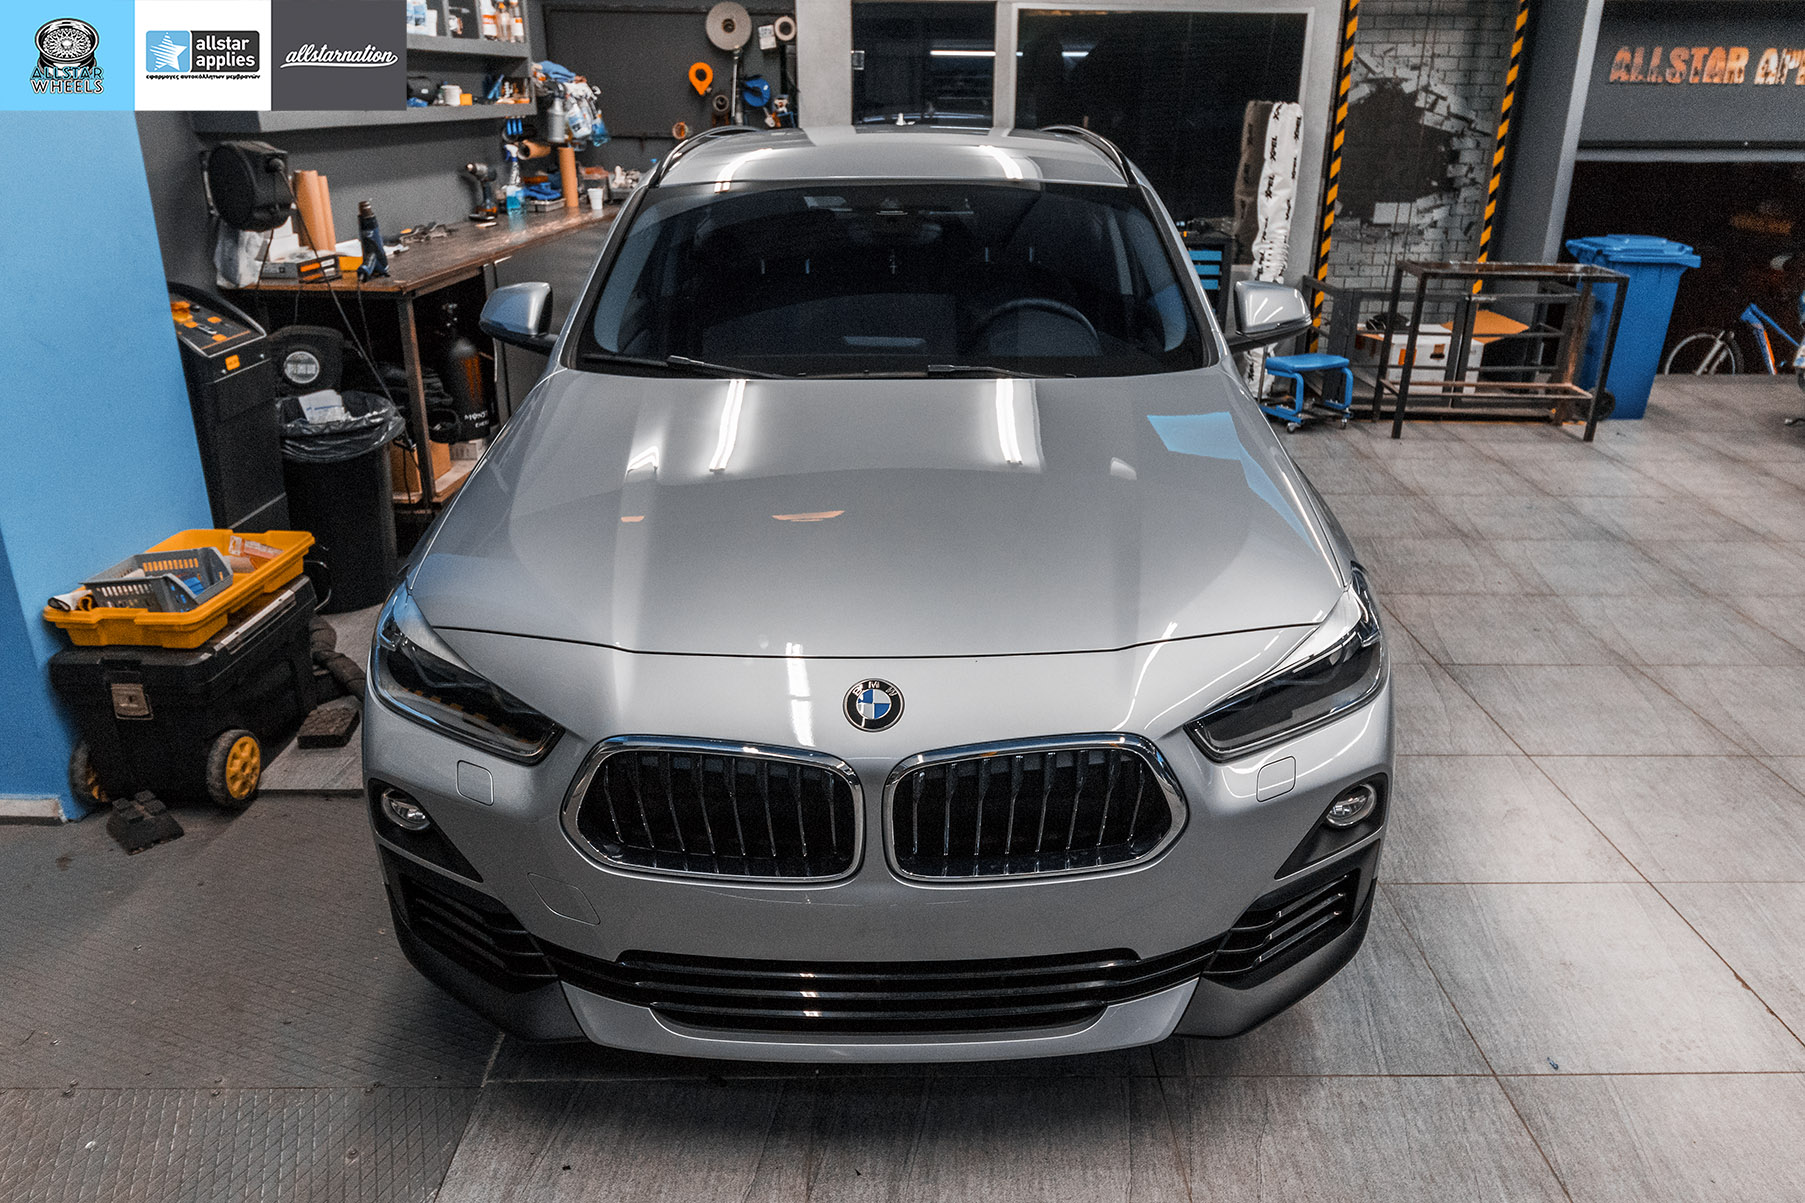 BMW X2 SDRIVE PAINT PROTECTION FILM ALLSTAR APPLIES 1